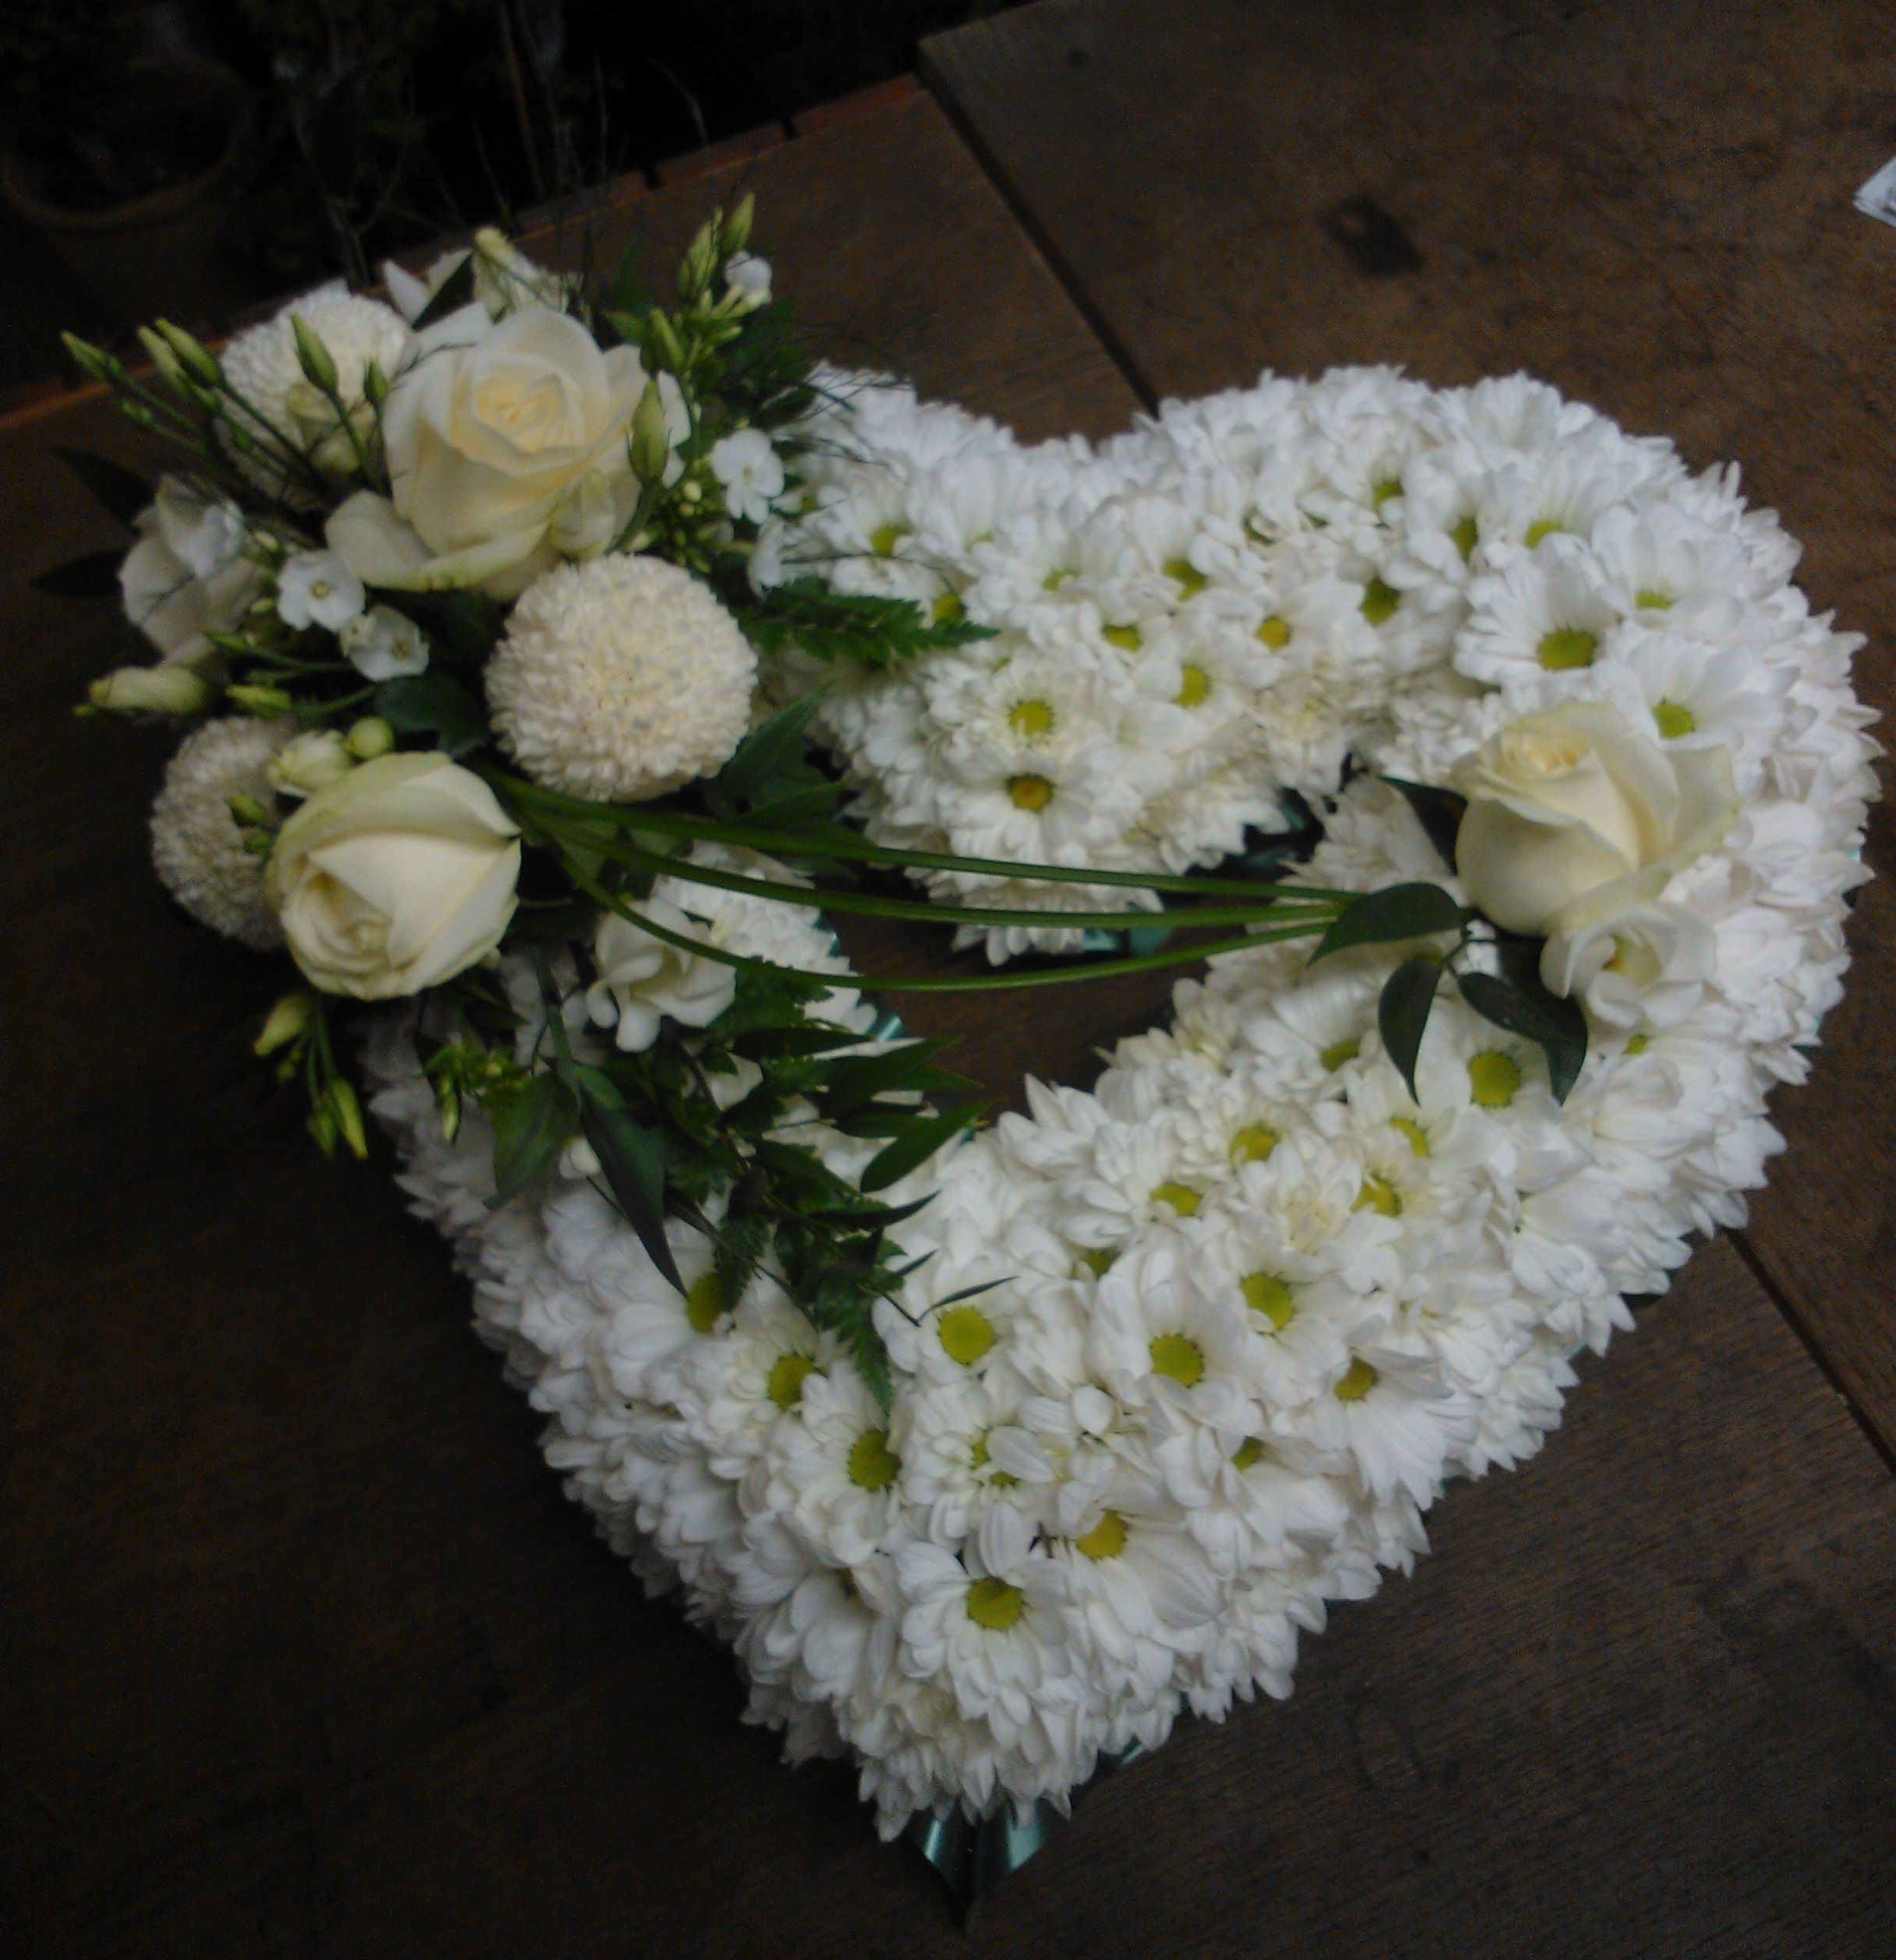 Funeral flowers floralcraft flowers heart funeral tribute flowers yorkshire izmirmasajfo Images